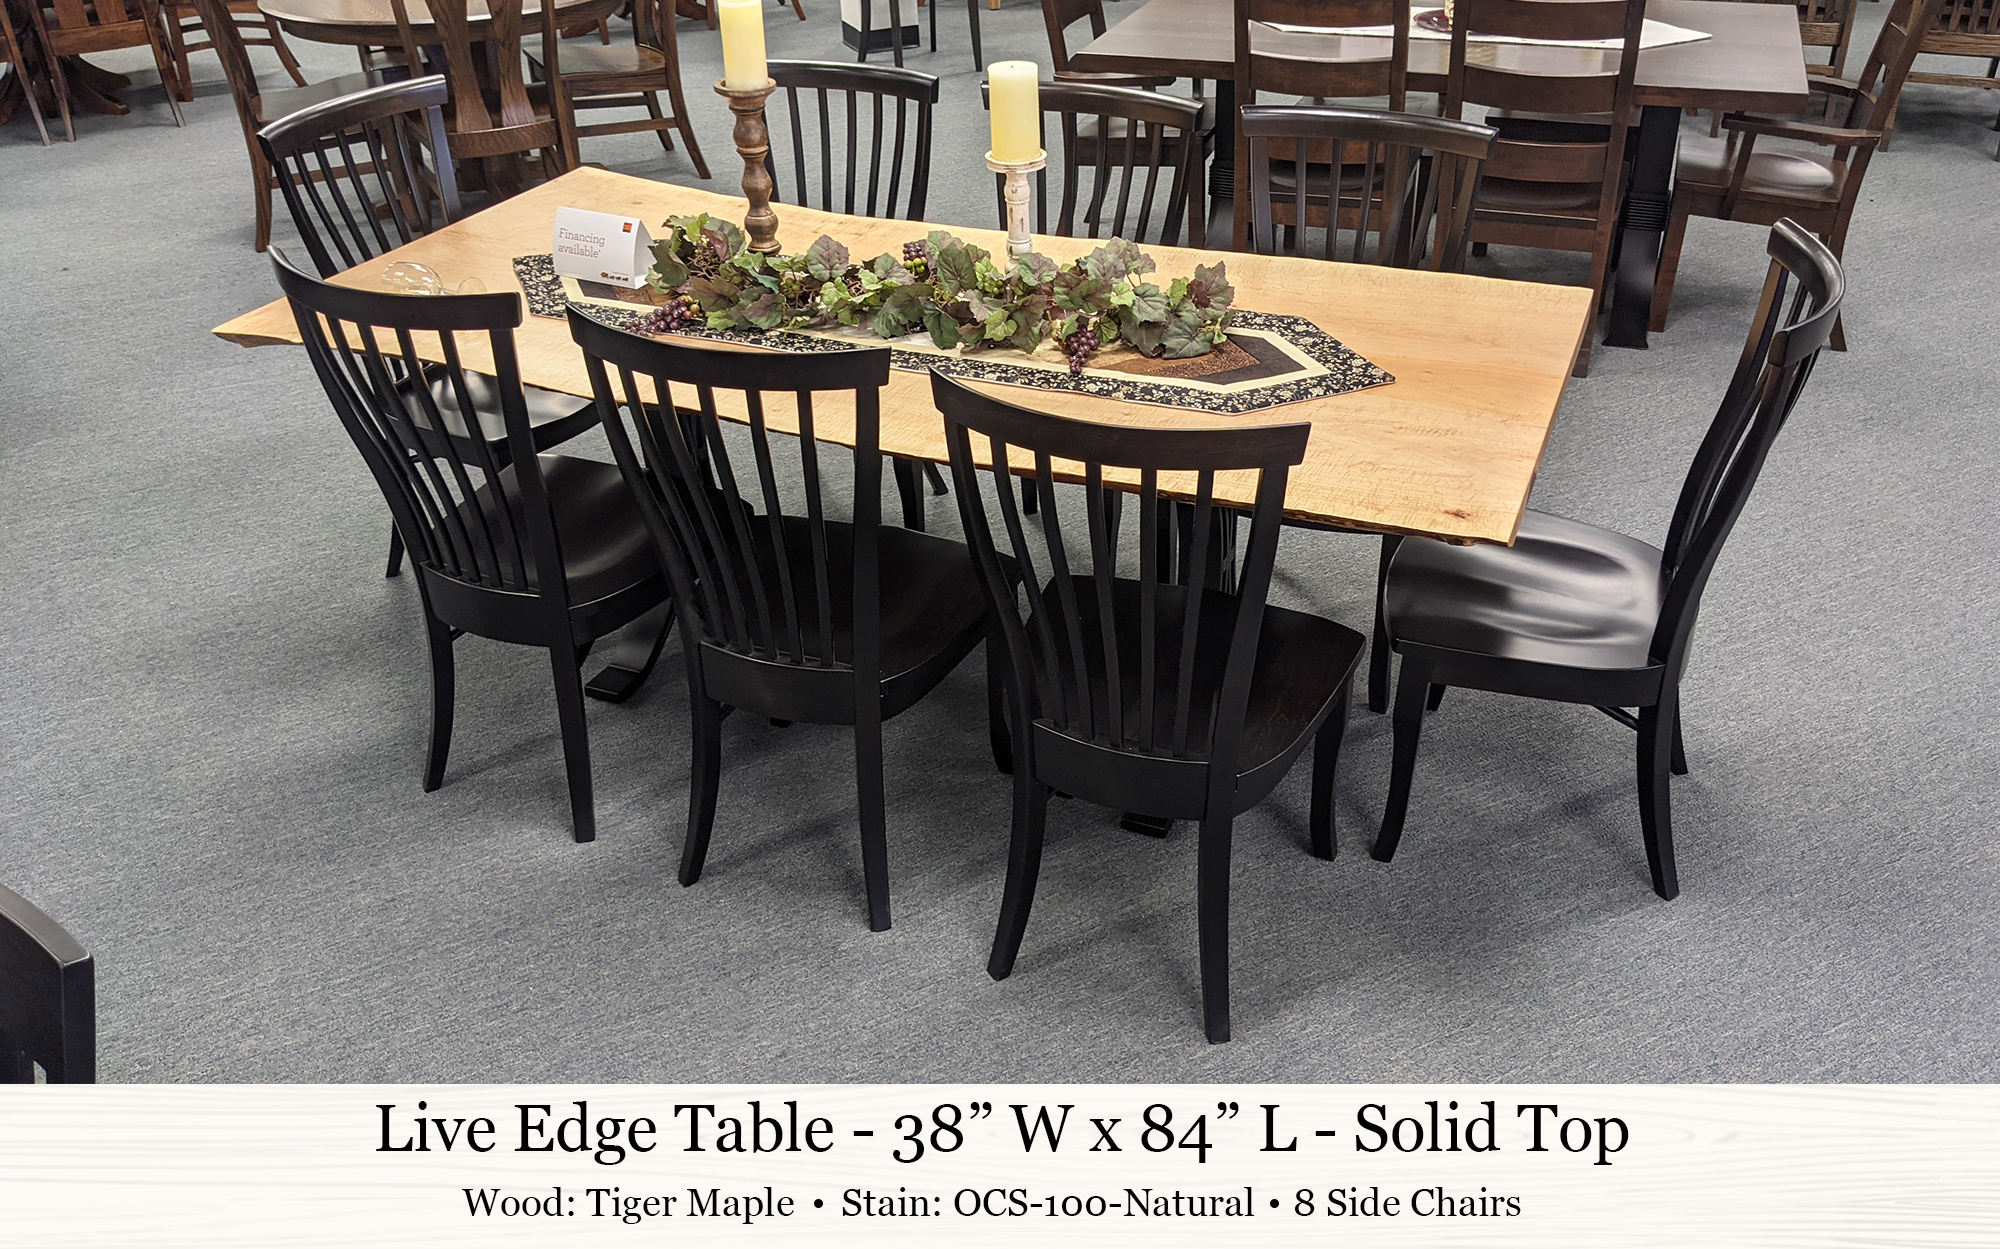 Live Edge Table Chesterfield Chairs